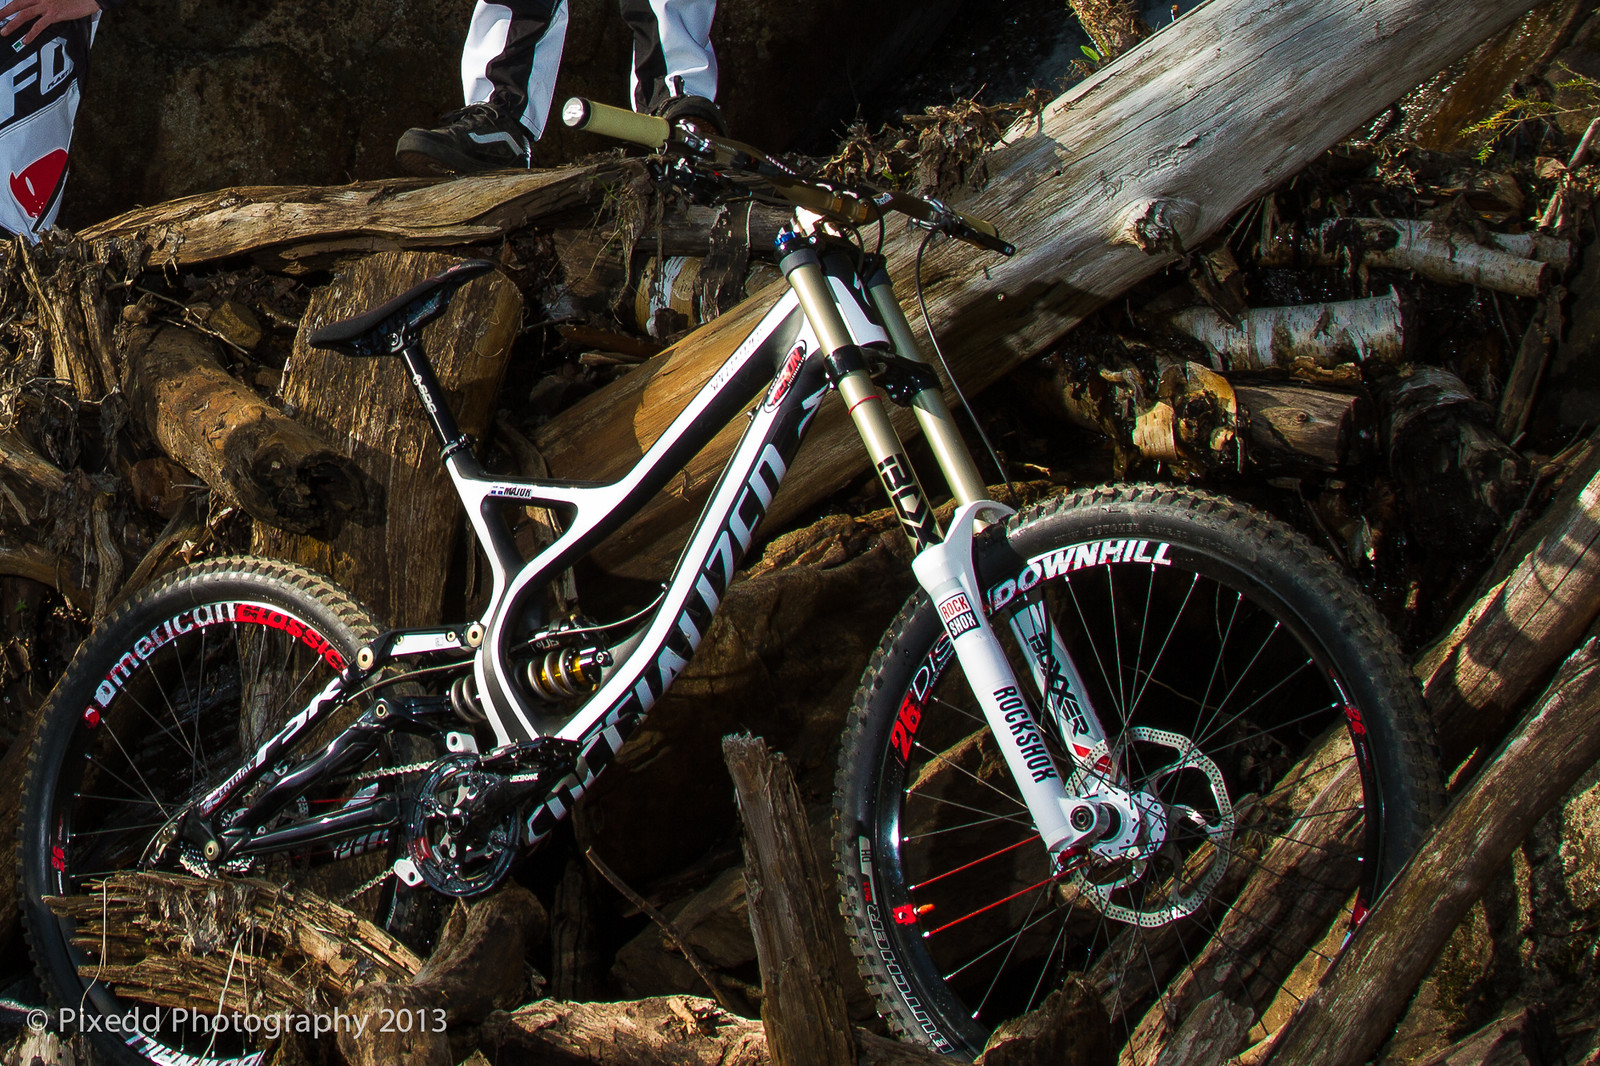 Cycle Neron/Specialized's 2013 Specialized Demo 8 I Carbon